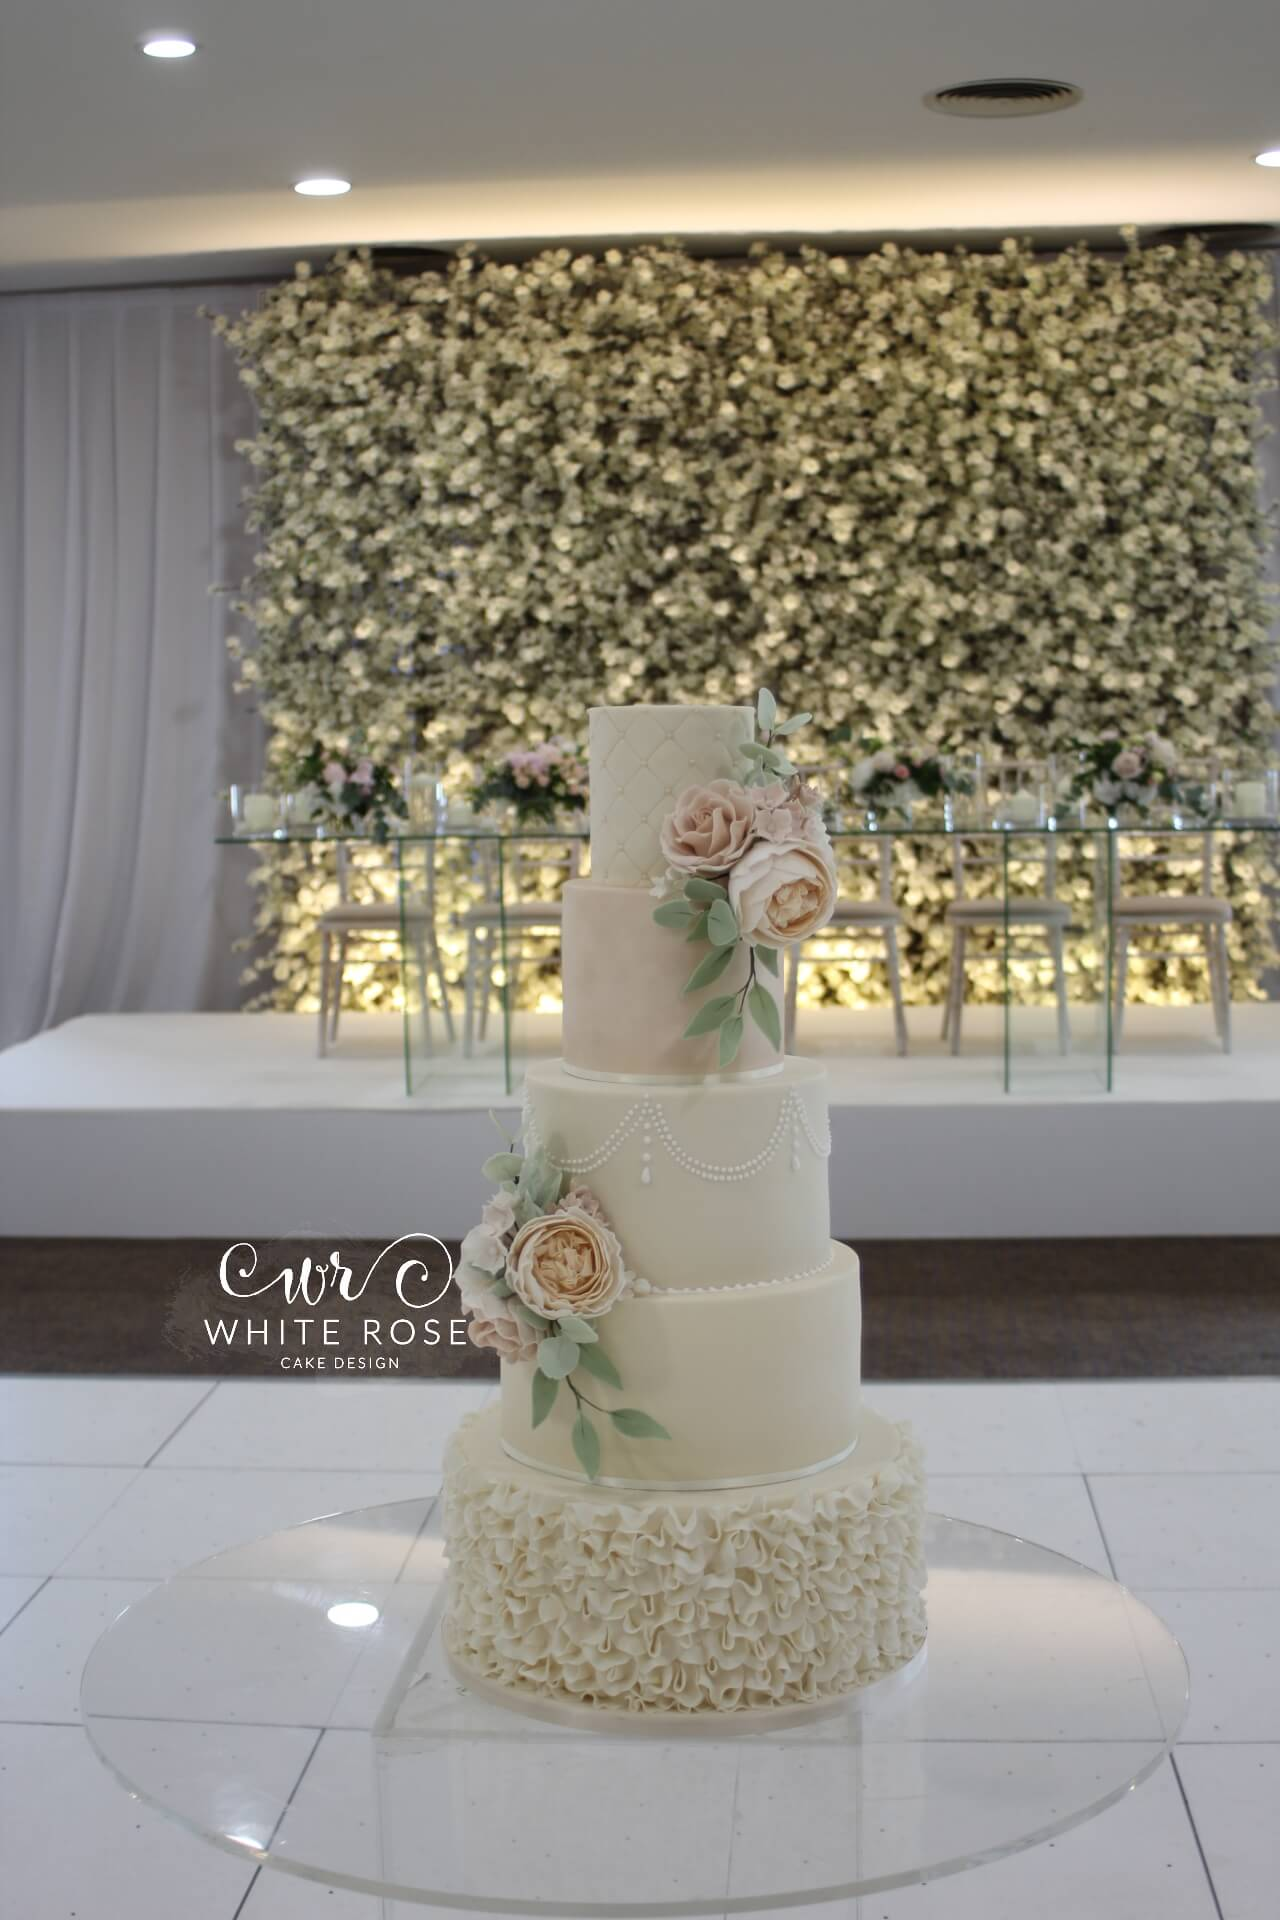 Five Tier Peach and Blush Wedding Cake with Sugar Flowers by White Rose Cake Design West Yorkshire Cake Maker